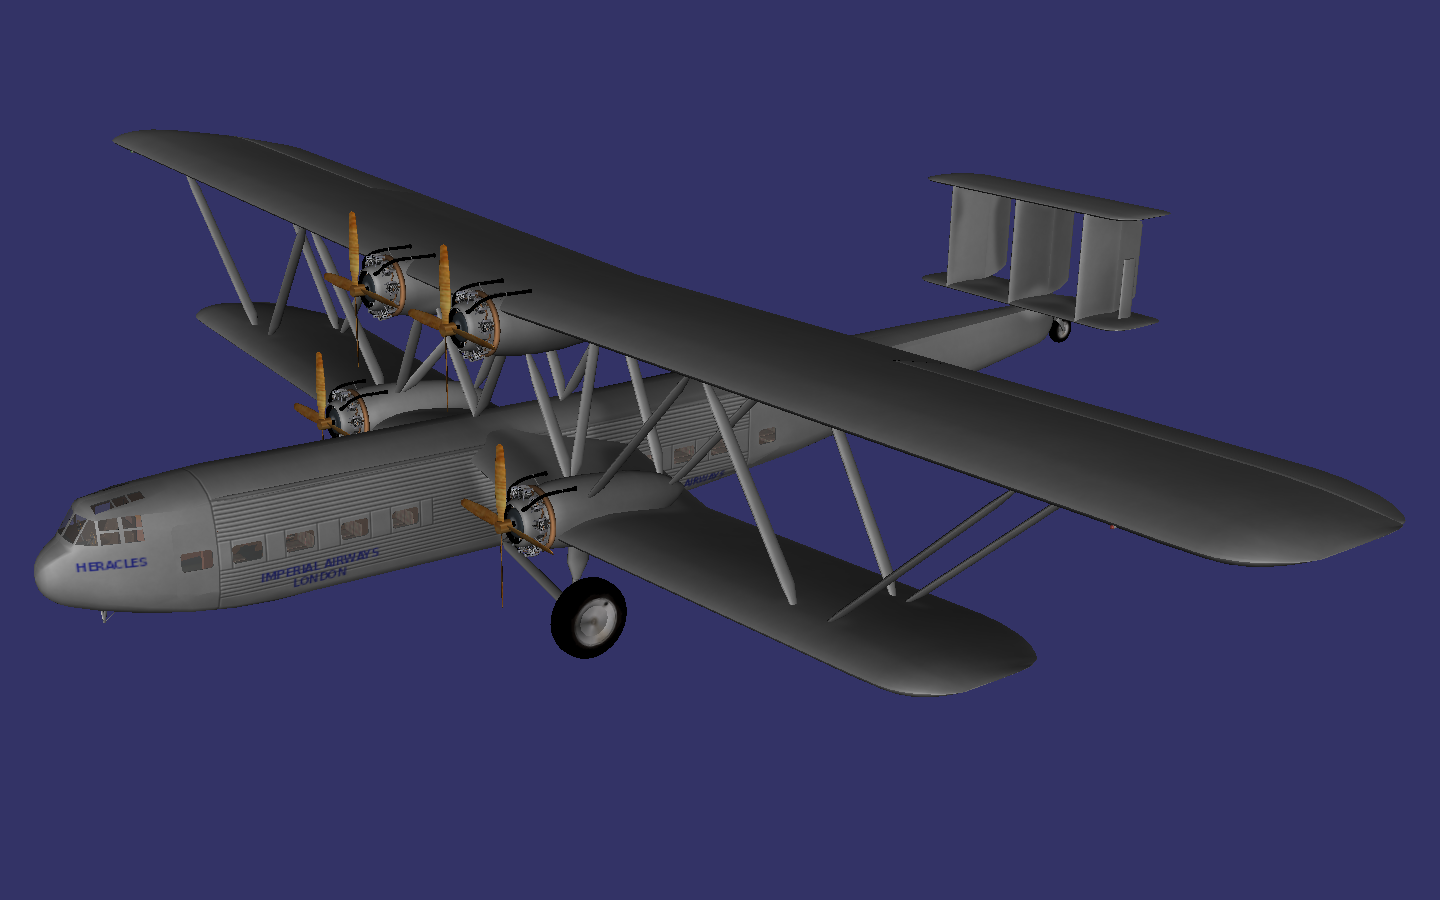 Handley Page HP 42 preview image 1